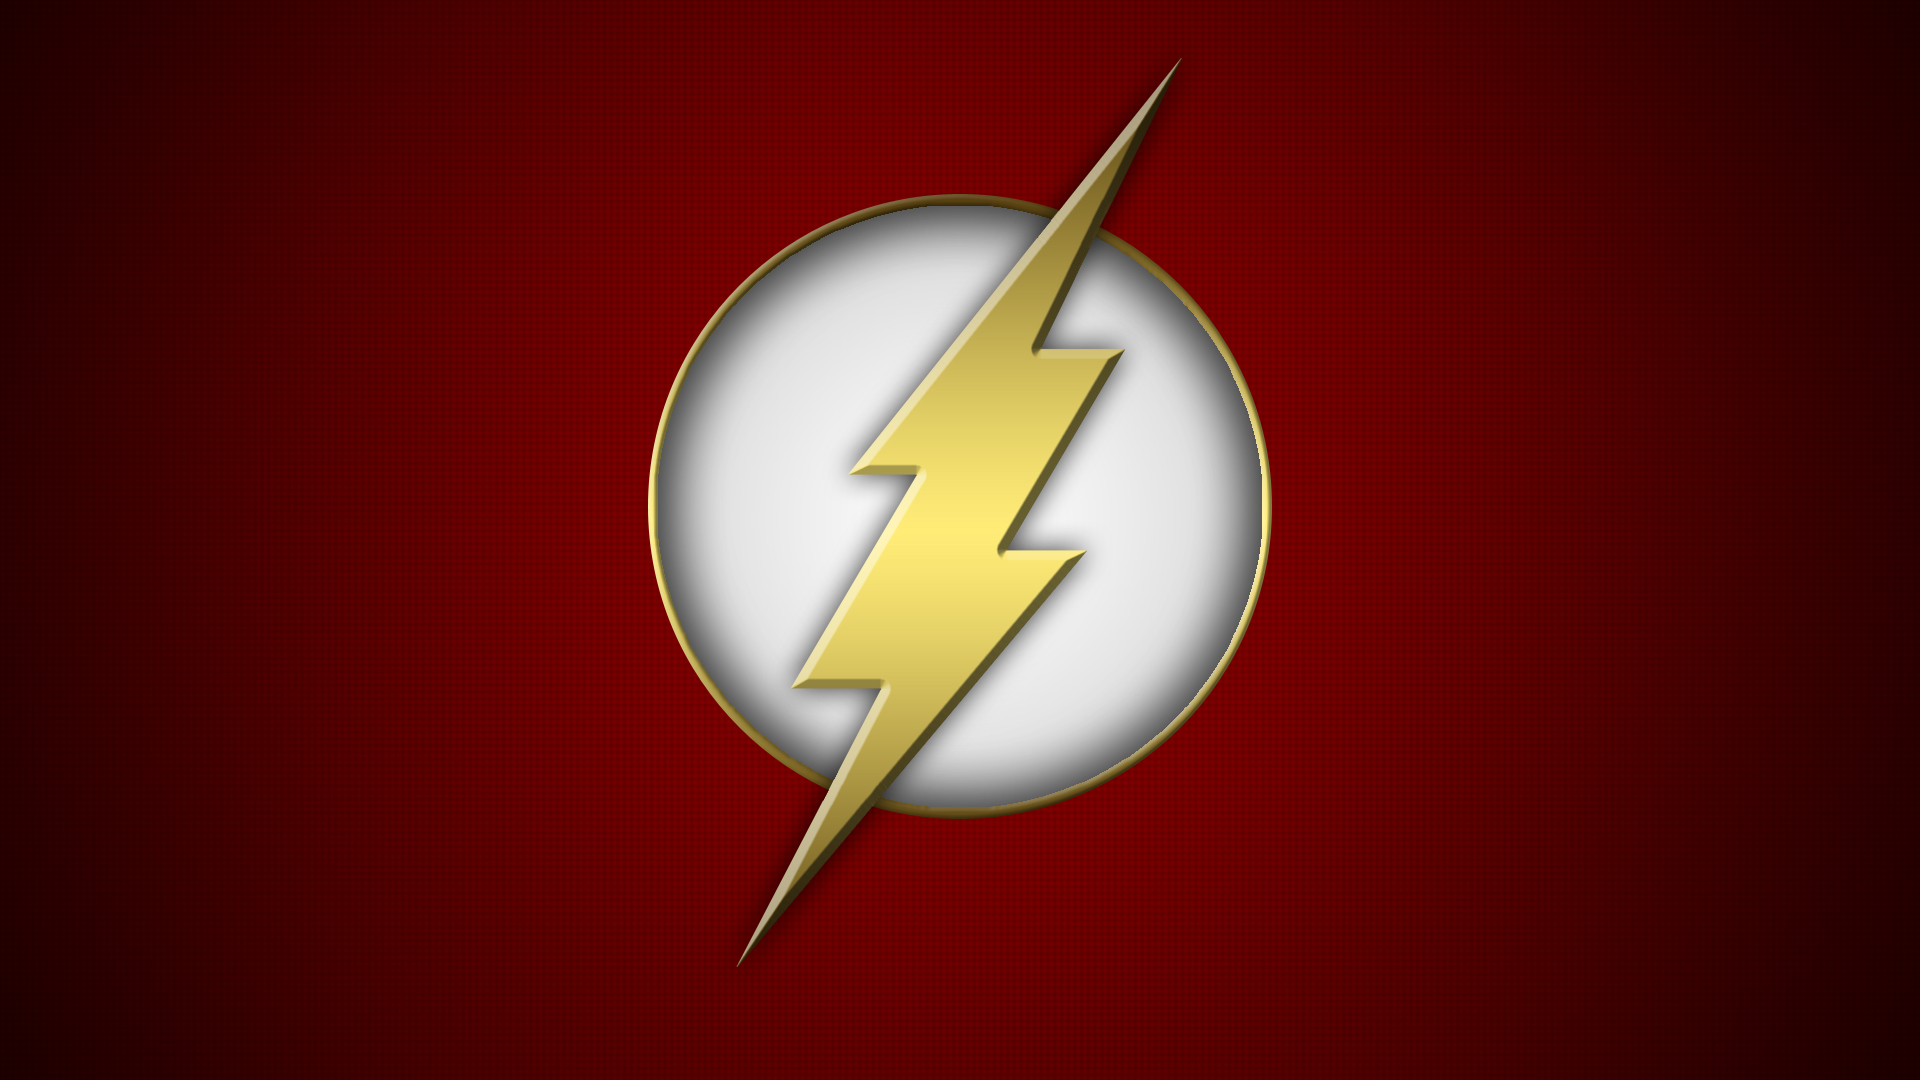 the flash logo wallpaper #21